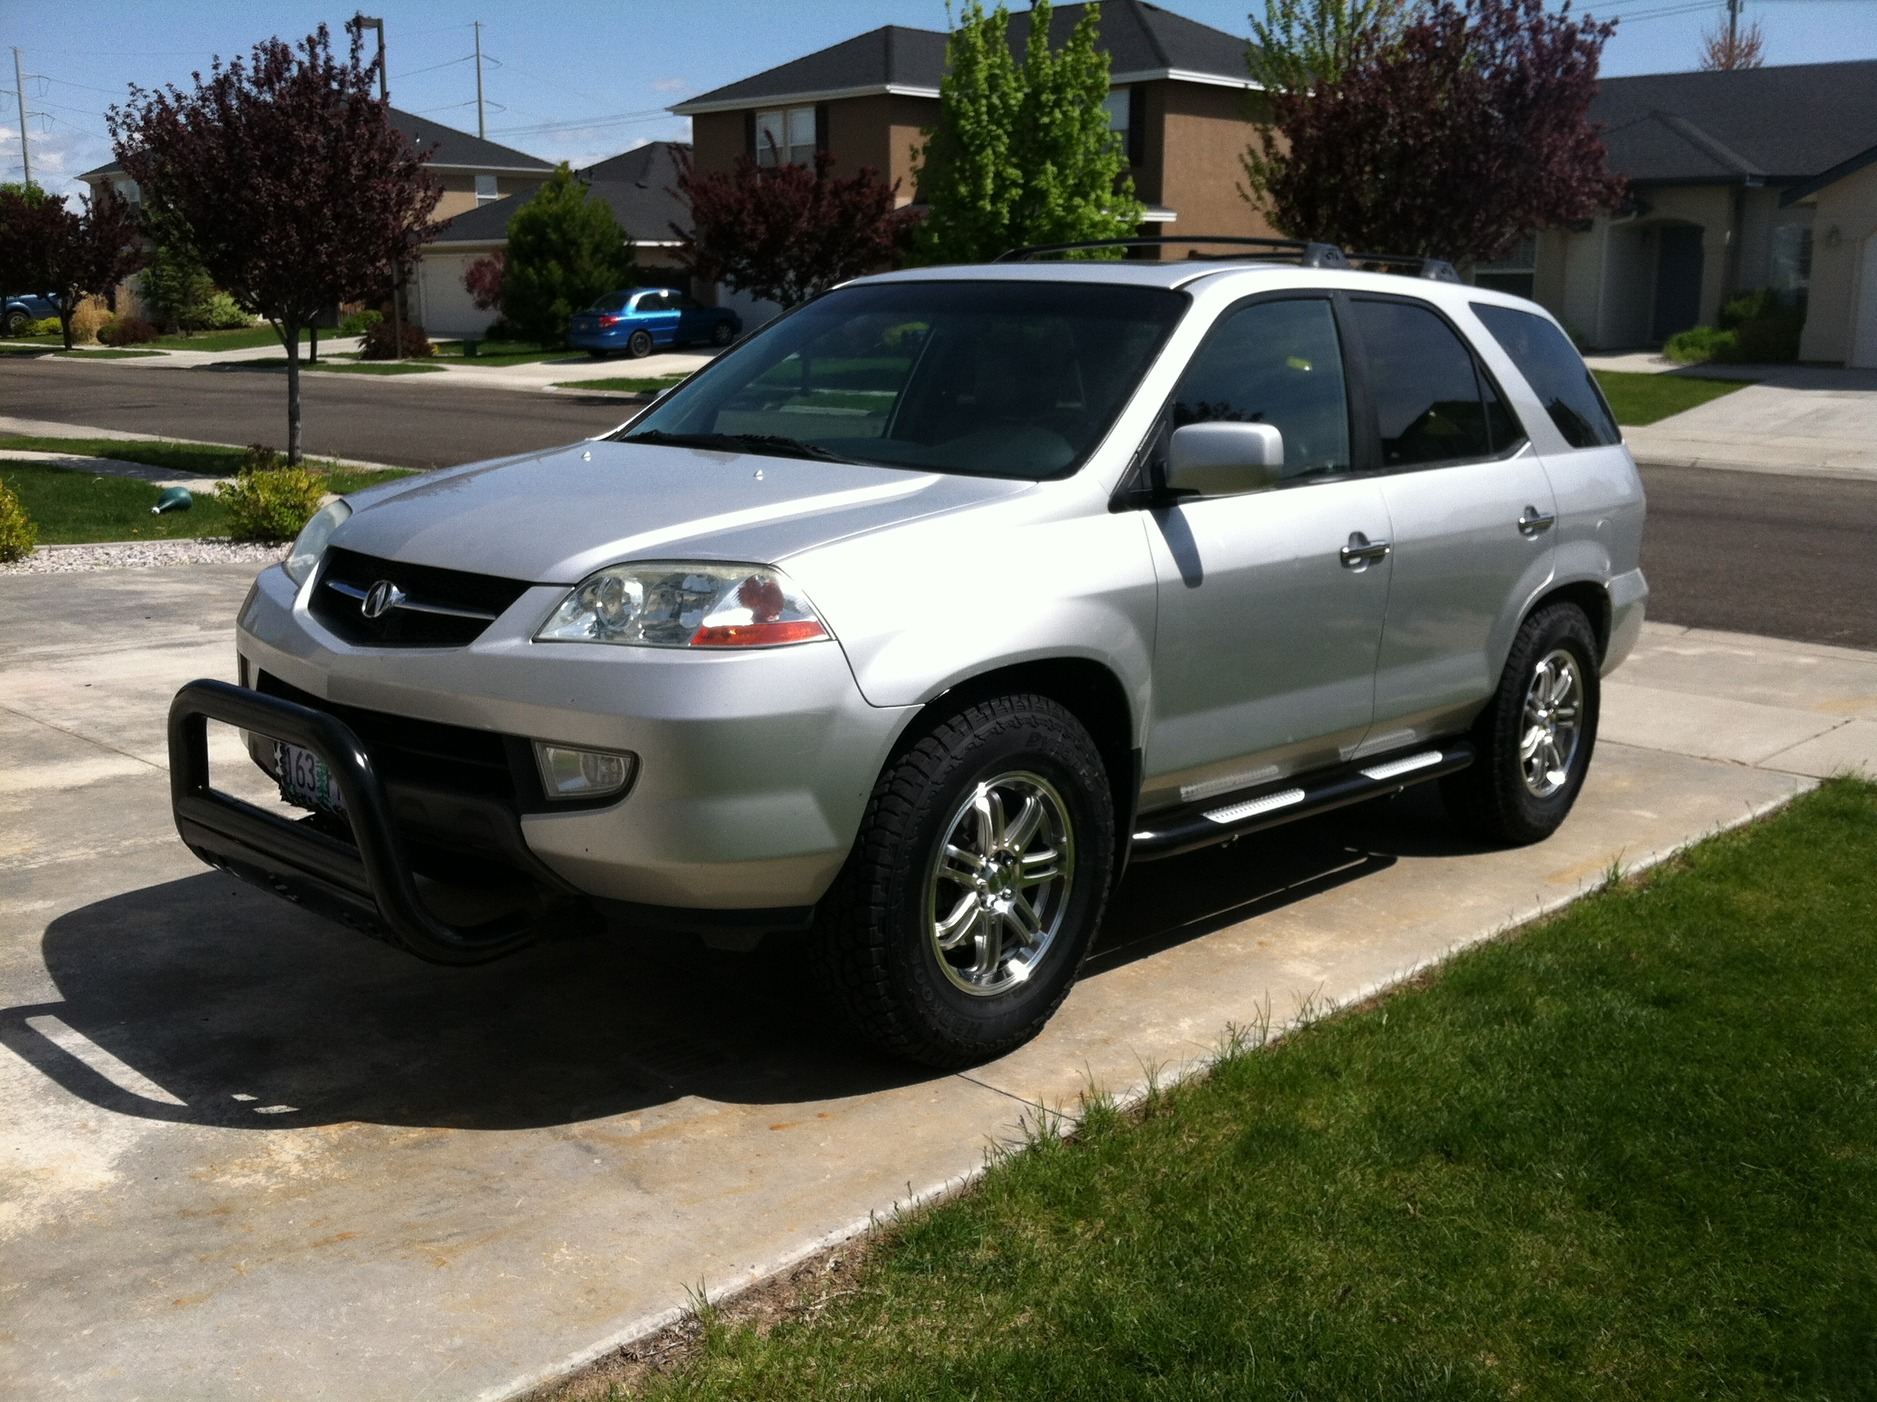 Large Wheel And Tire Combo For A The Big Squeeze As I Call It - 2002 acura mdx tires